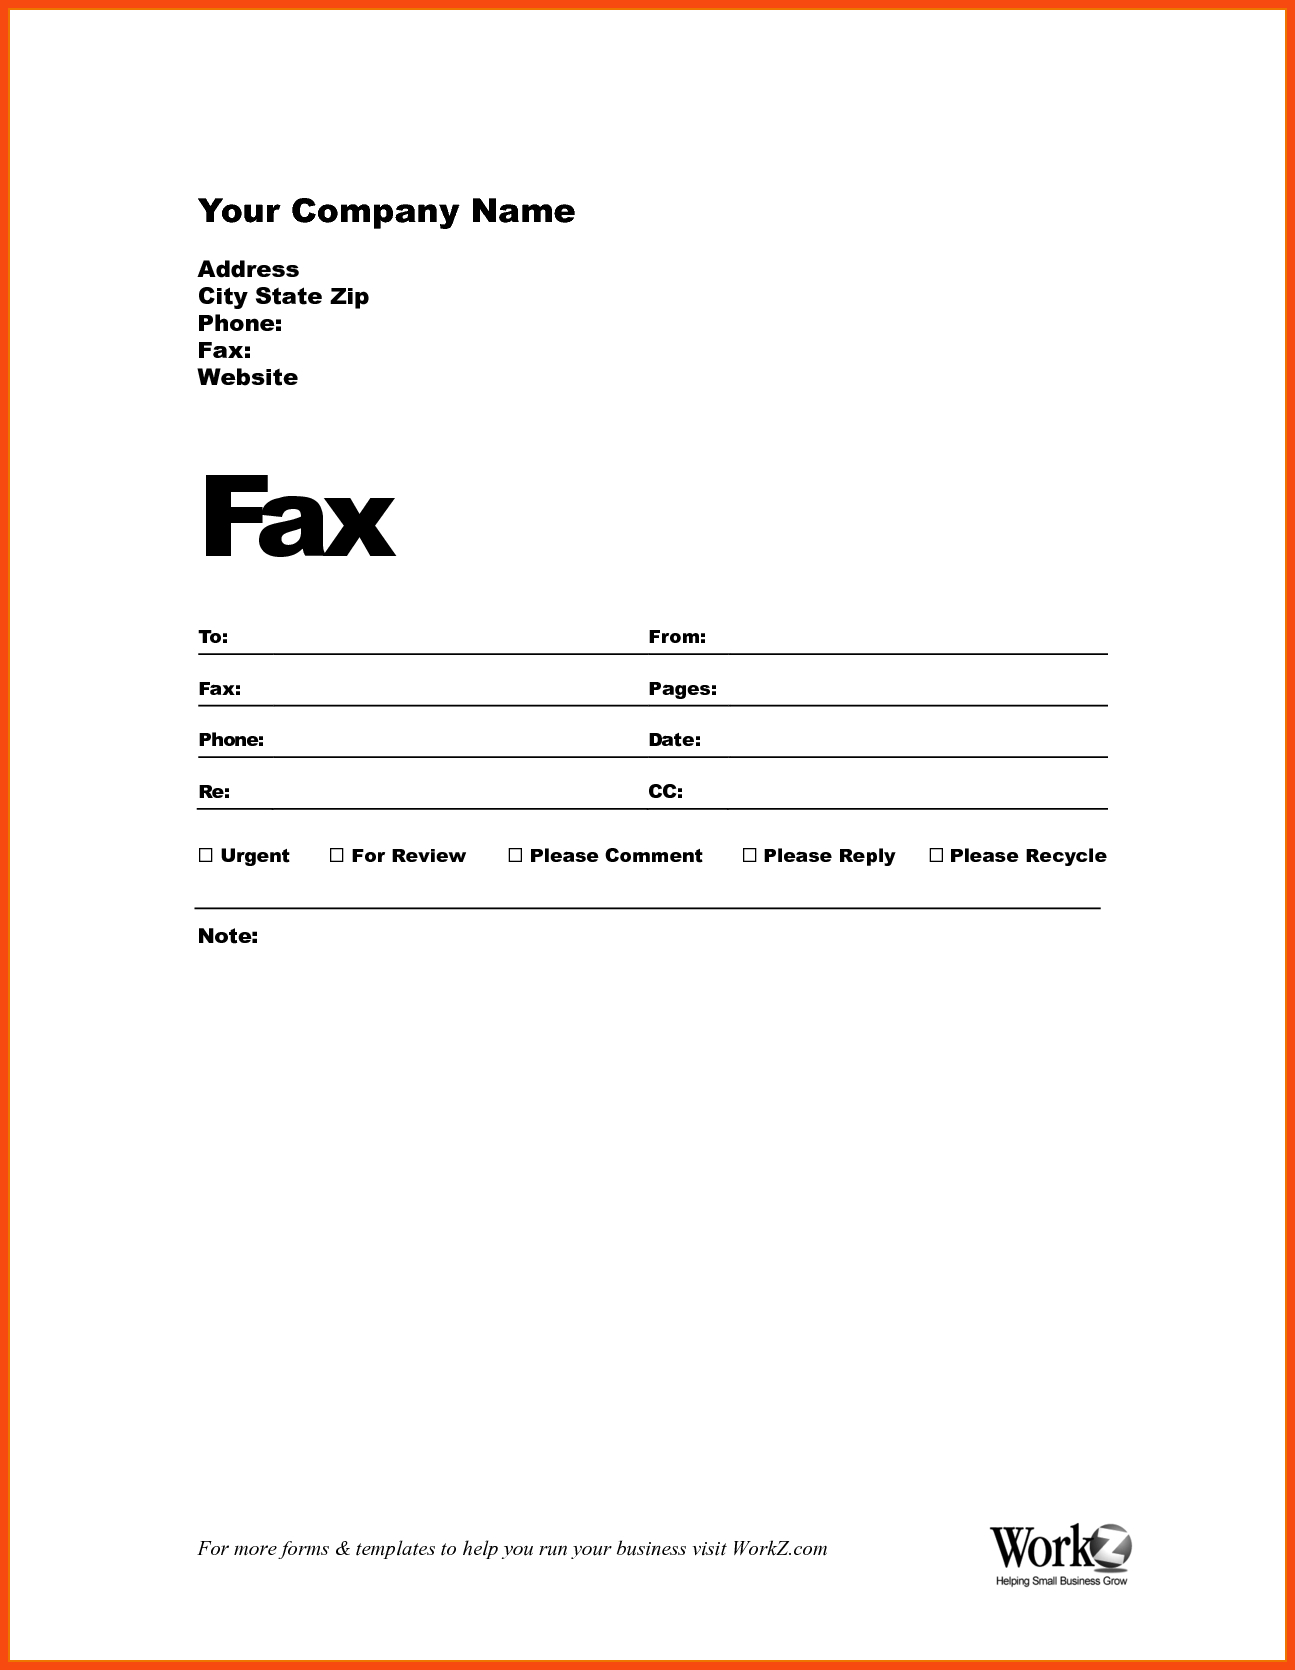 How To Fill Out A Fax Cover Sheet Free Fax Cover Sheet Template Fax - Free Printable Fax Cover Page